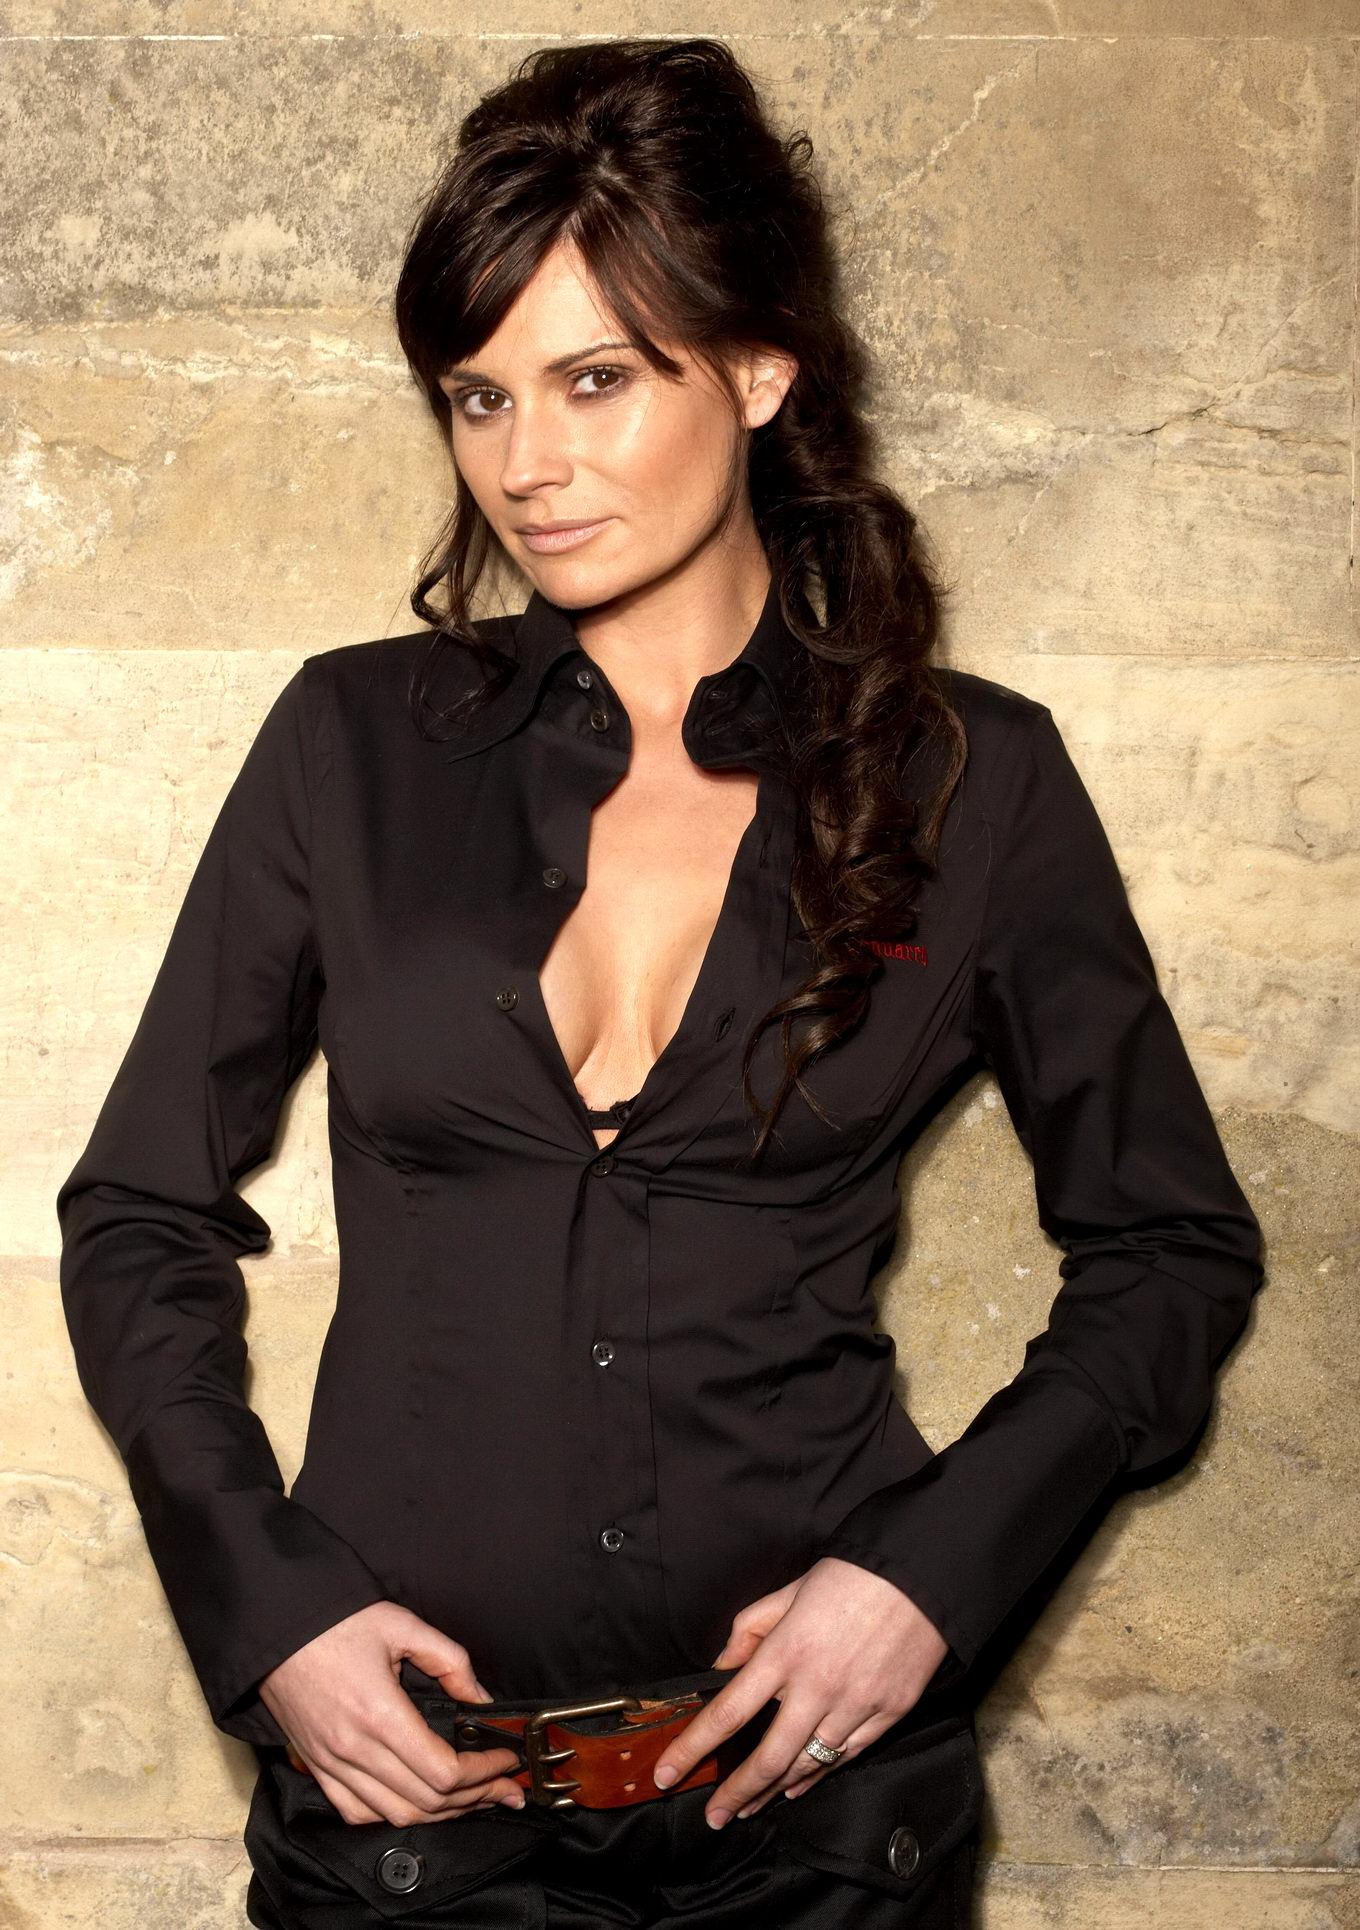 Lucy pargeter nude Nude Photos 48